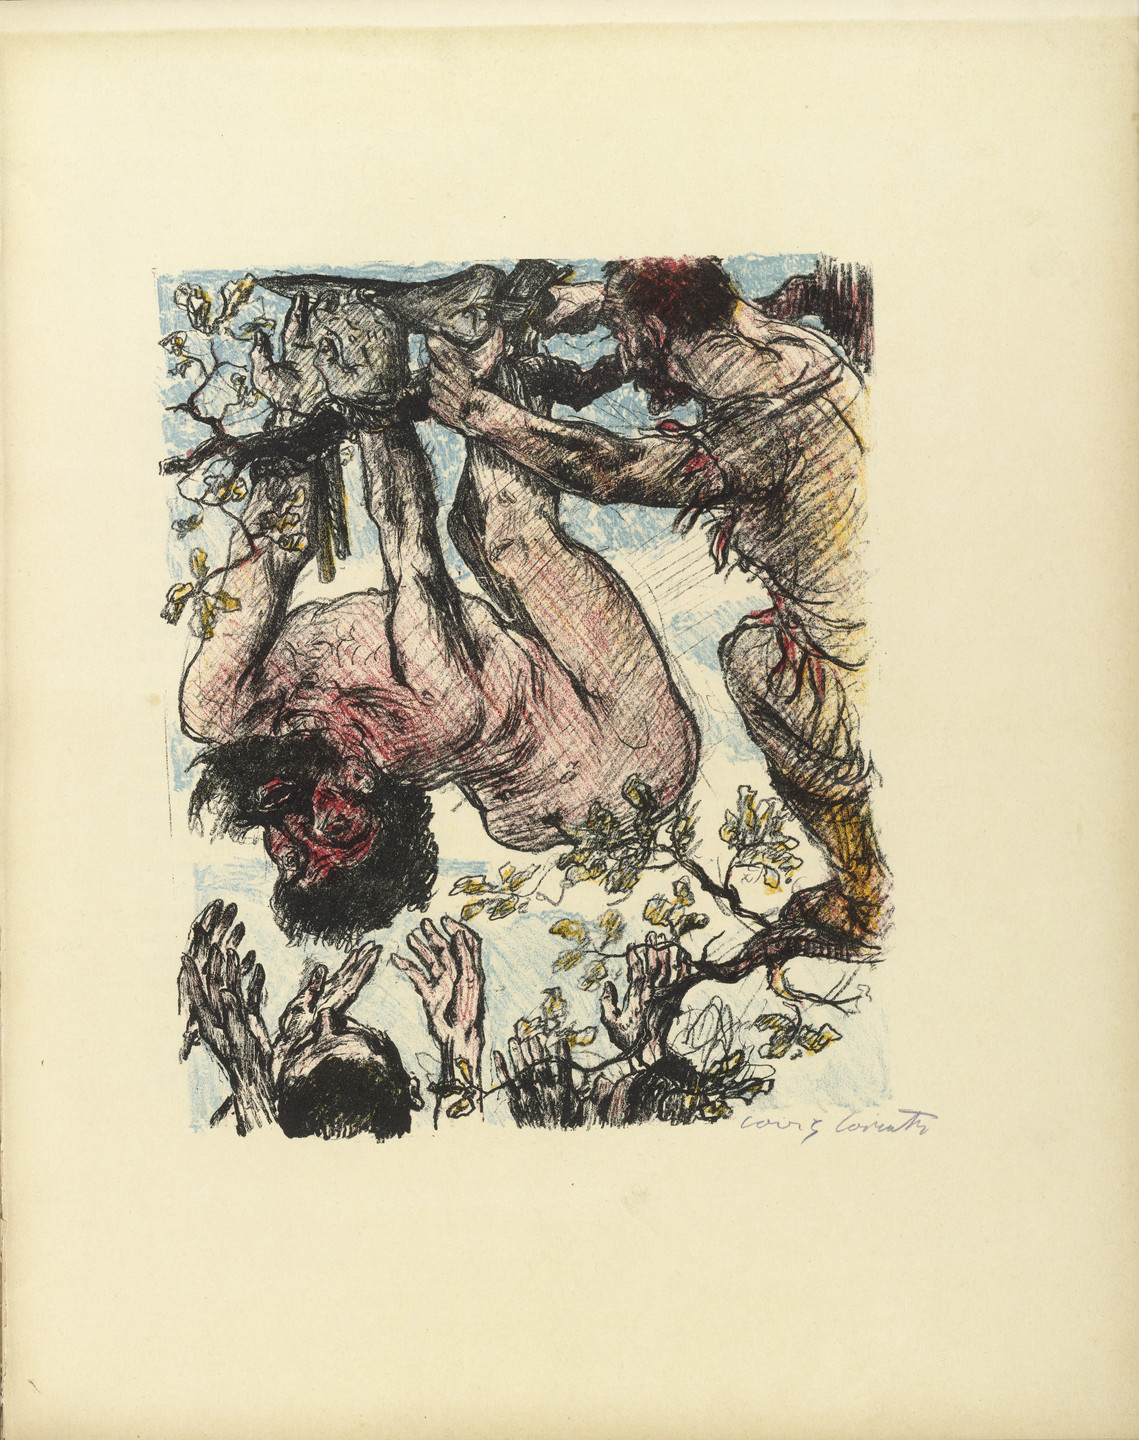 Lovis Corinth. Achior Hanged from a Tree (Achior am Baume hängend) (plate, folio 14) from Das Buch Judith (The Book of Judith). 1910